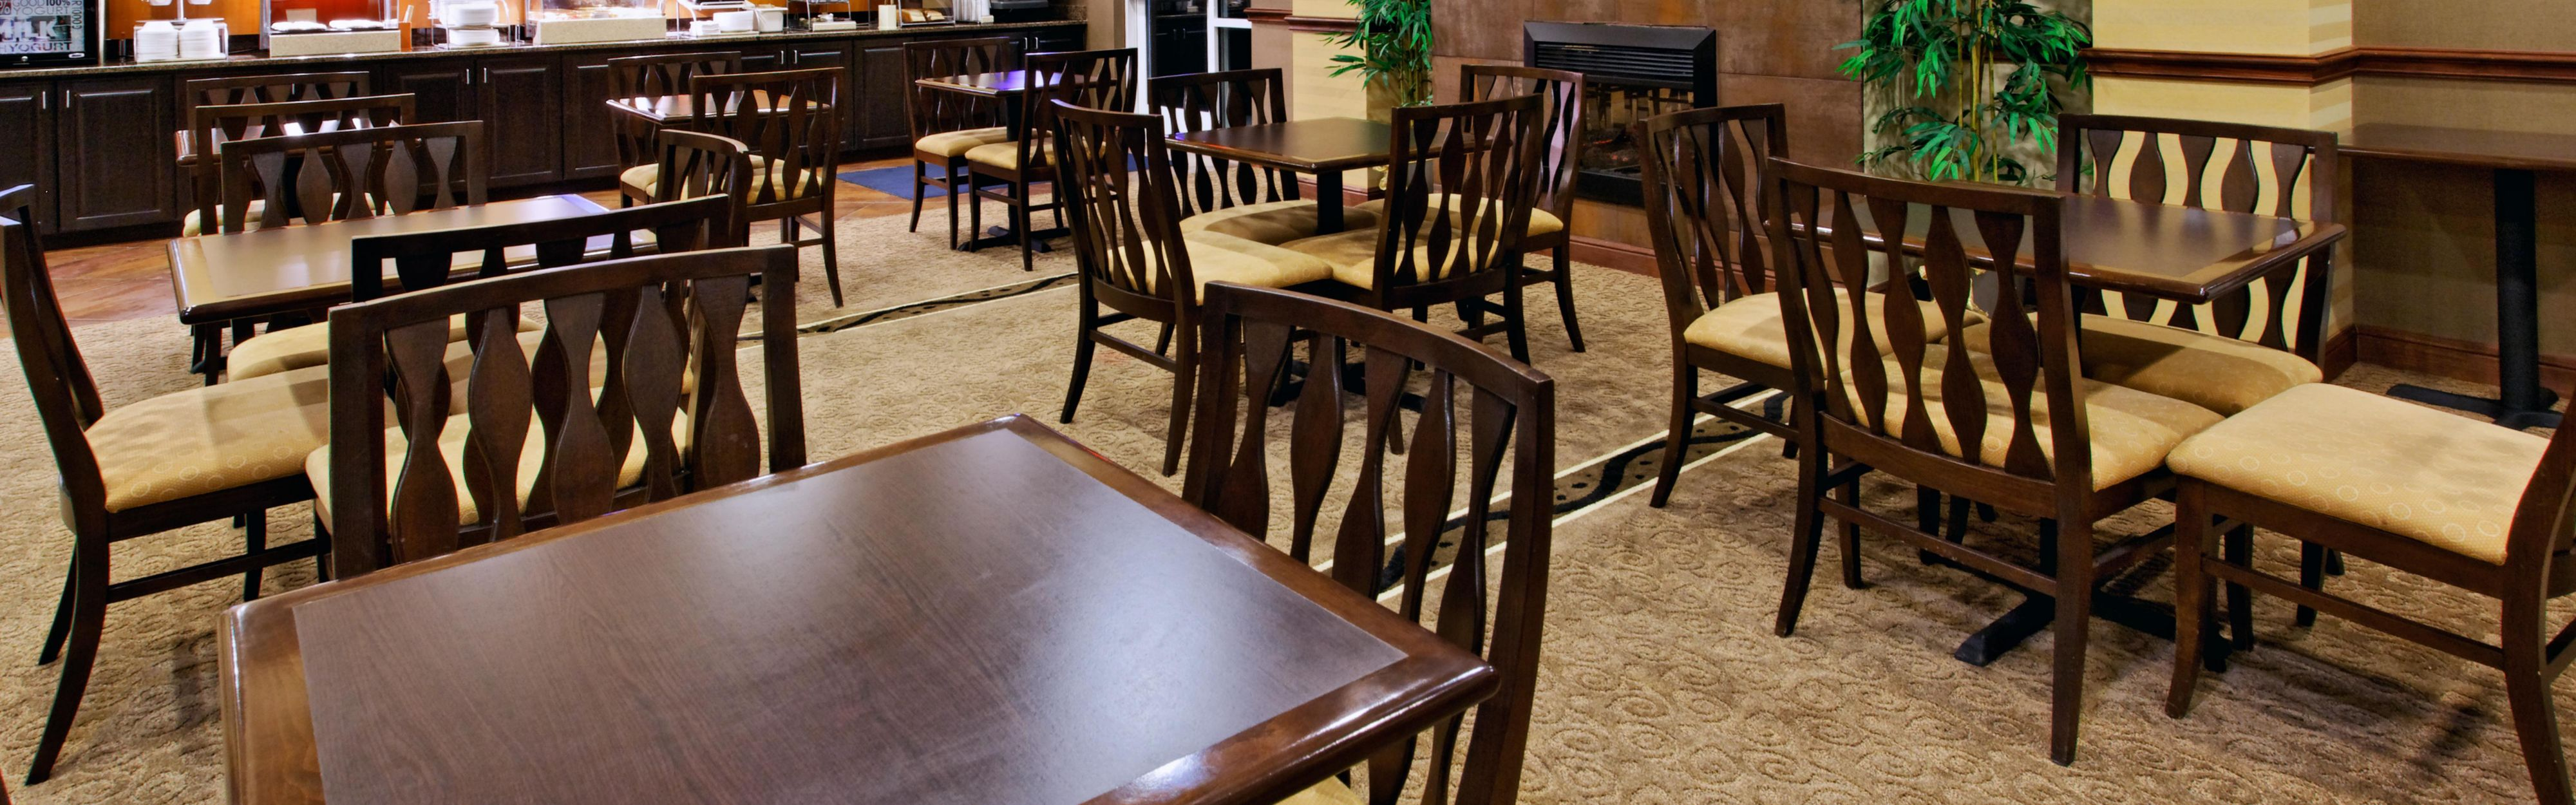 Holiday Inn Express & Suites Cleburne image 3